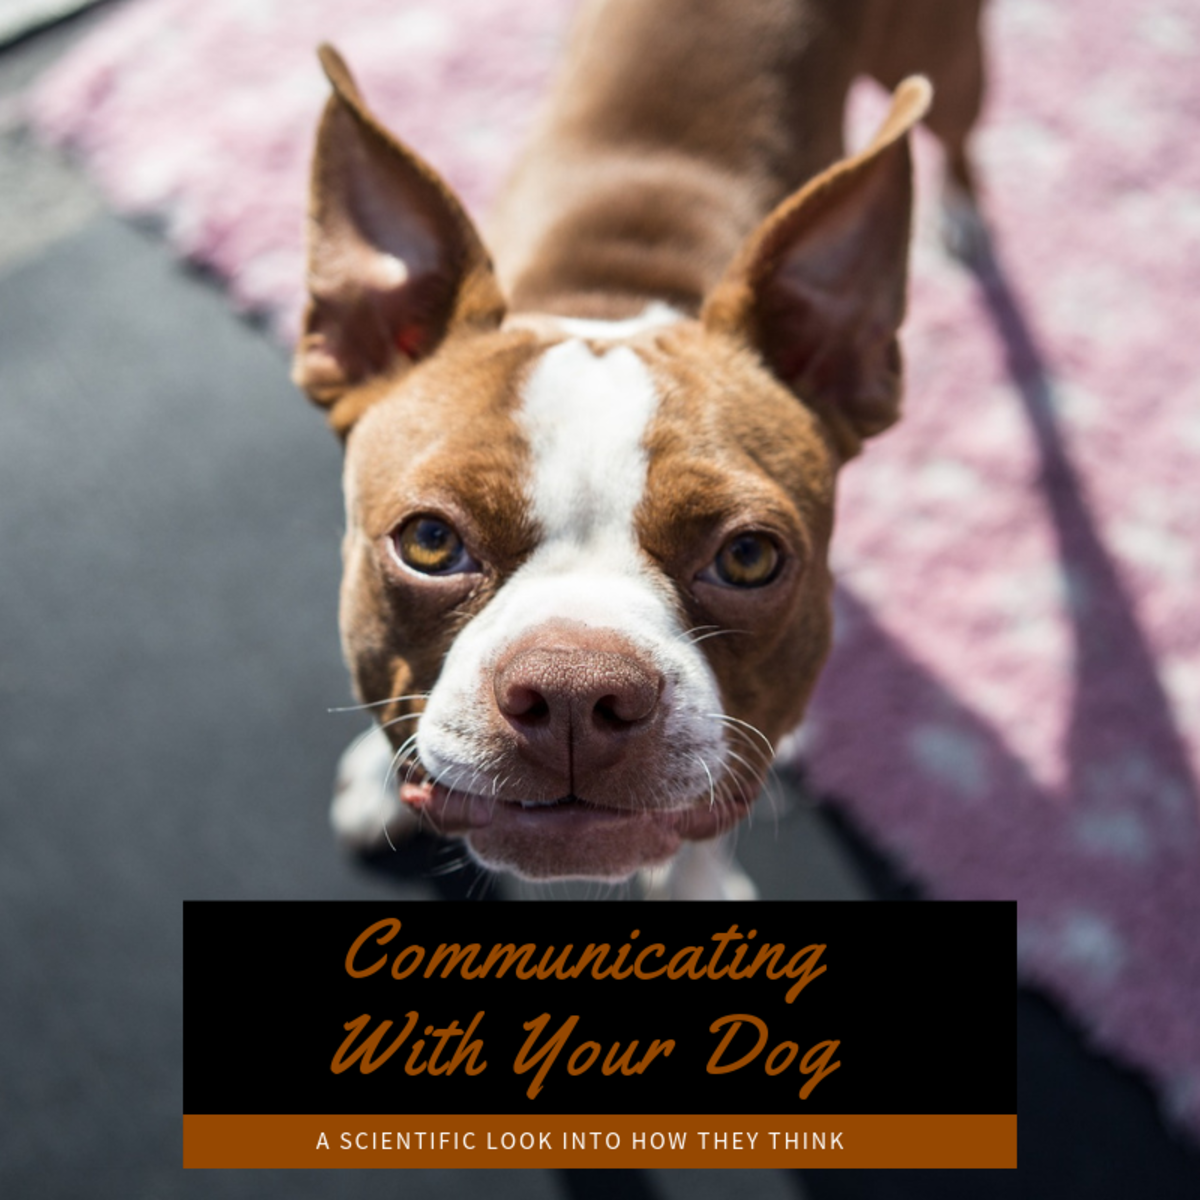 This article will take a scientific look into the intelligence of dogs and how we communicate with them.